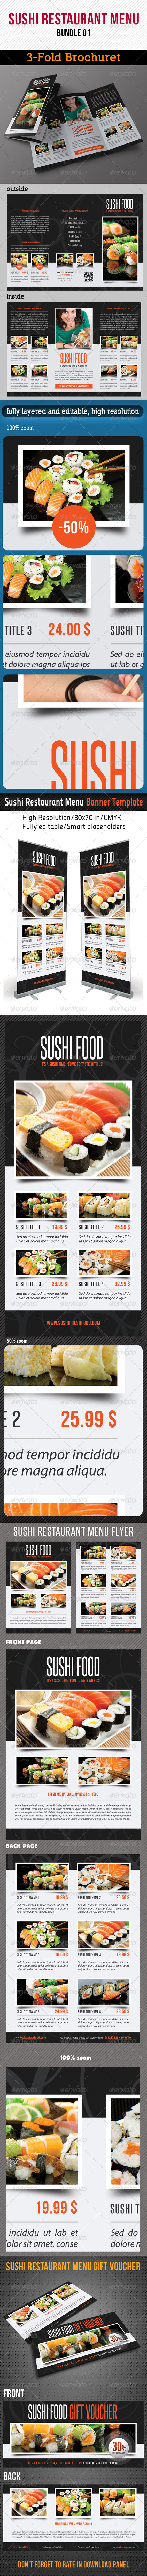 GraphicRiver Sushi Restaurant Menu Bundle 01 8470045